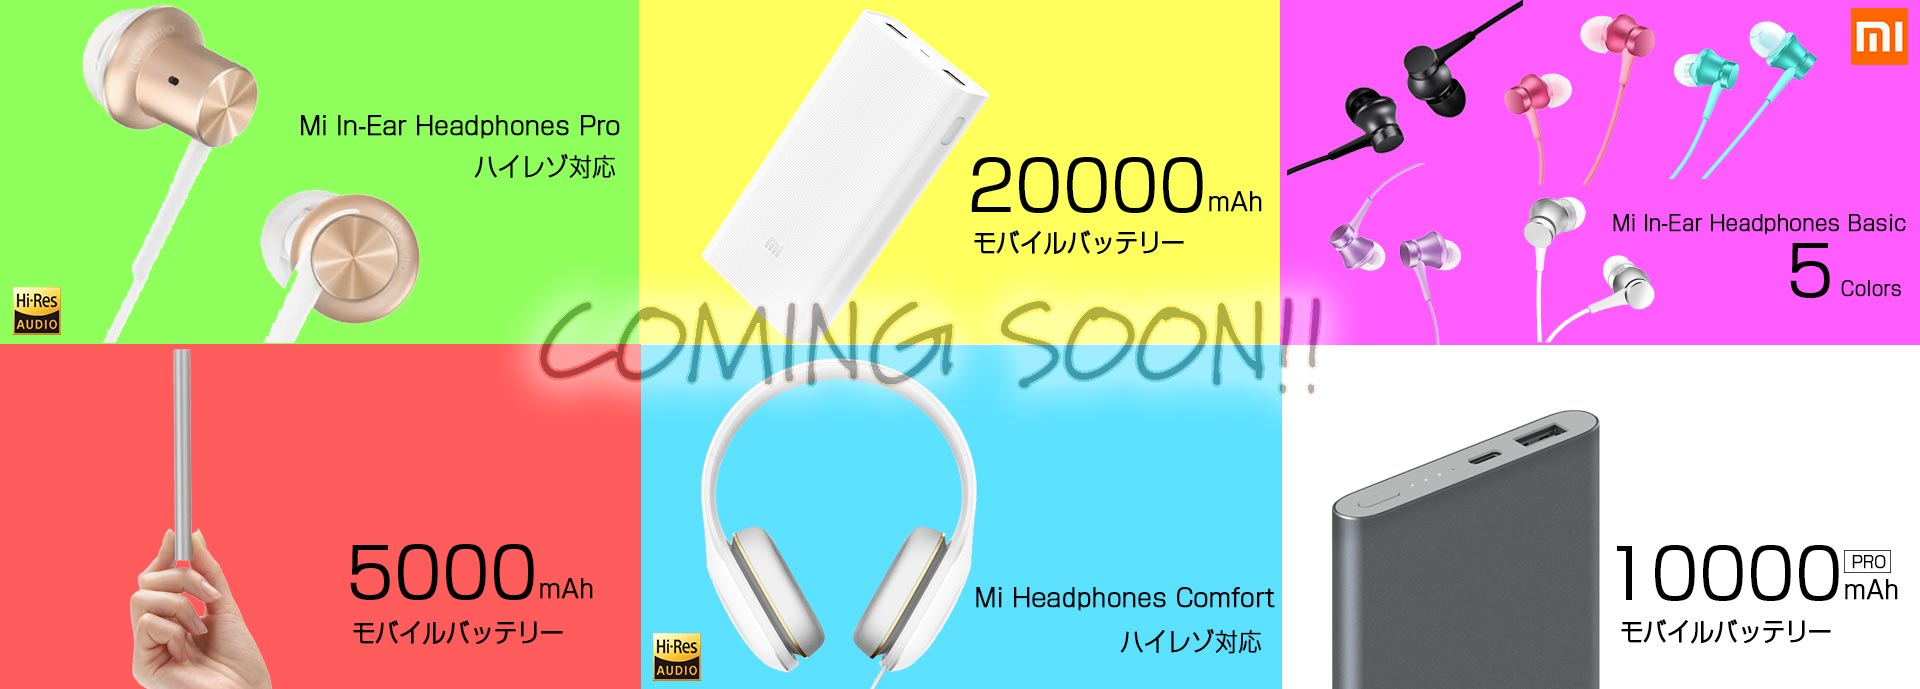 Xiaomi_Comming soon